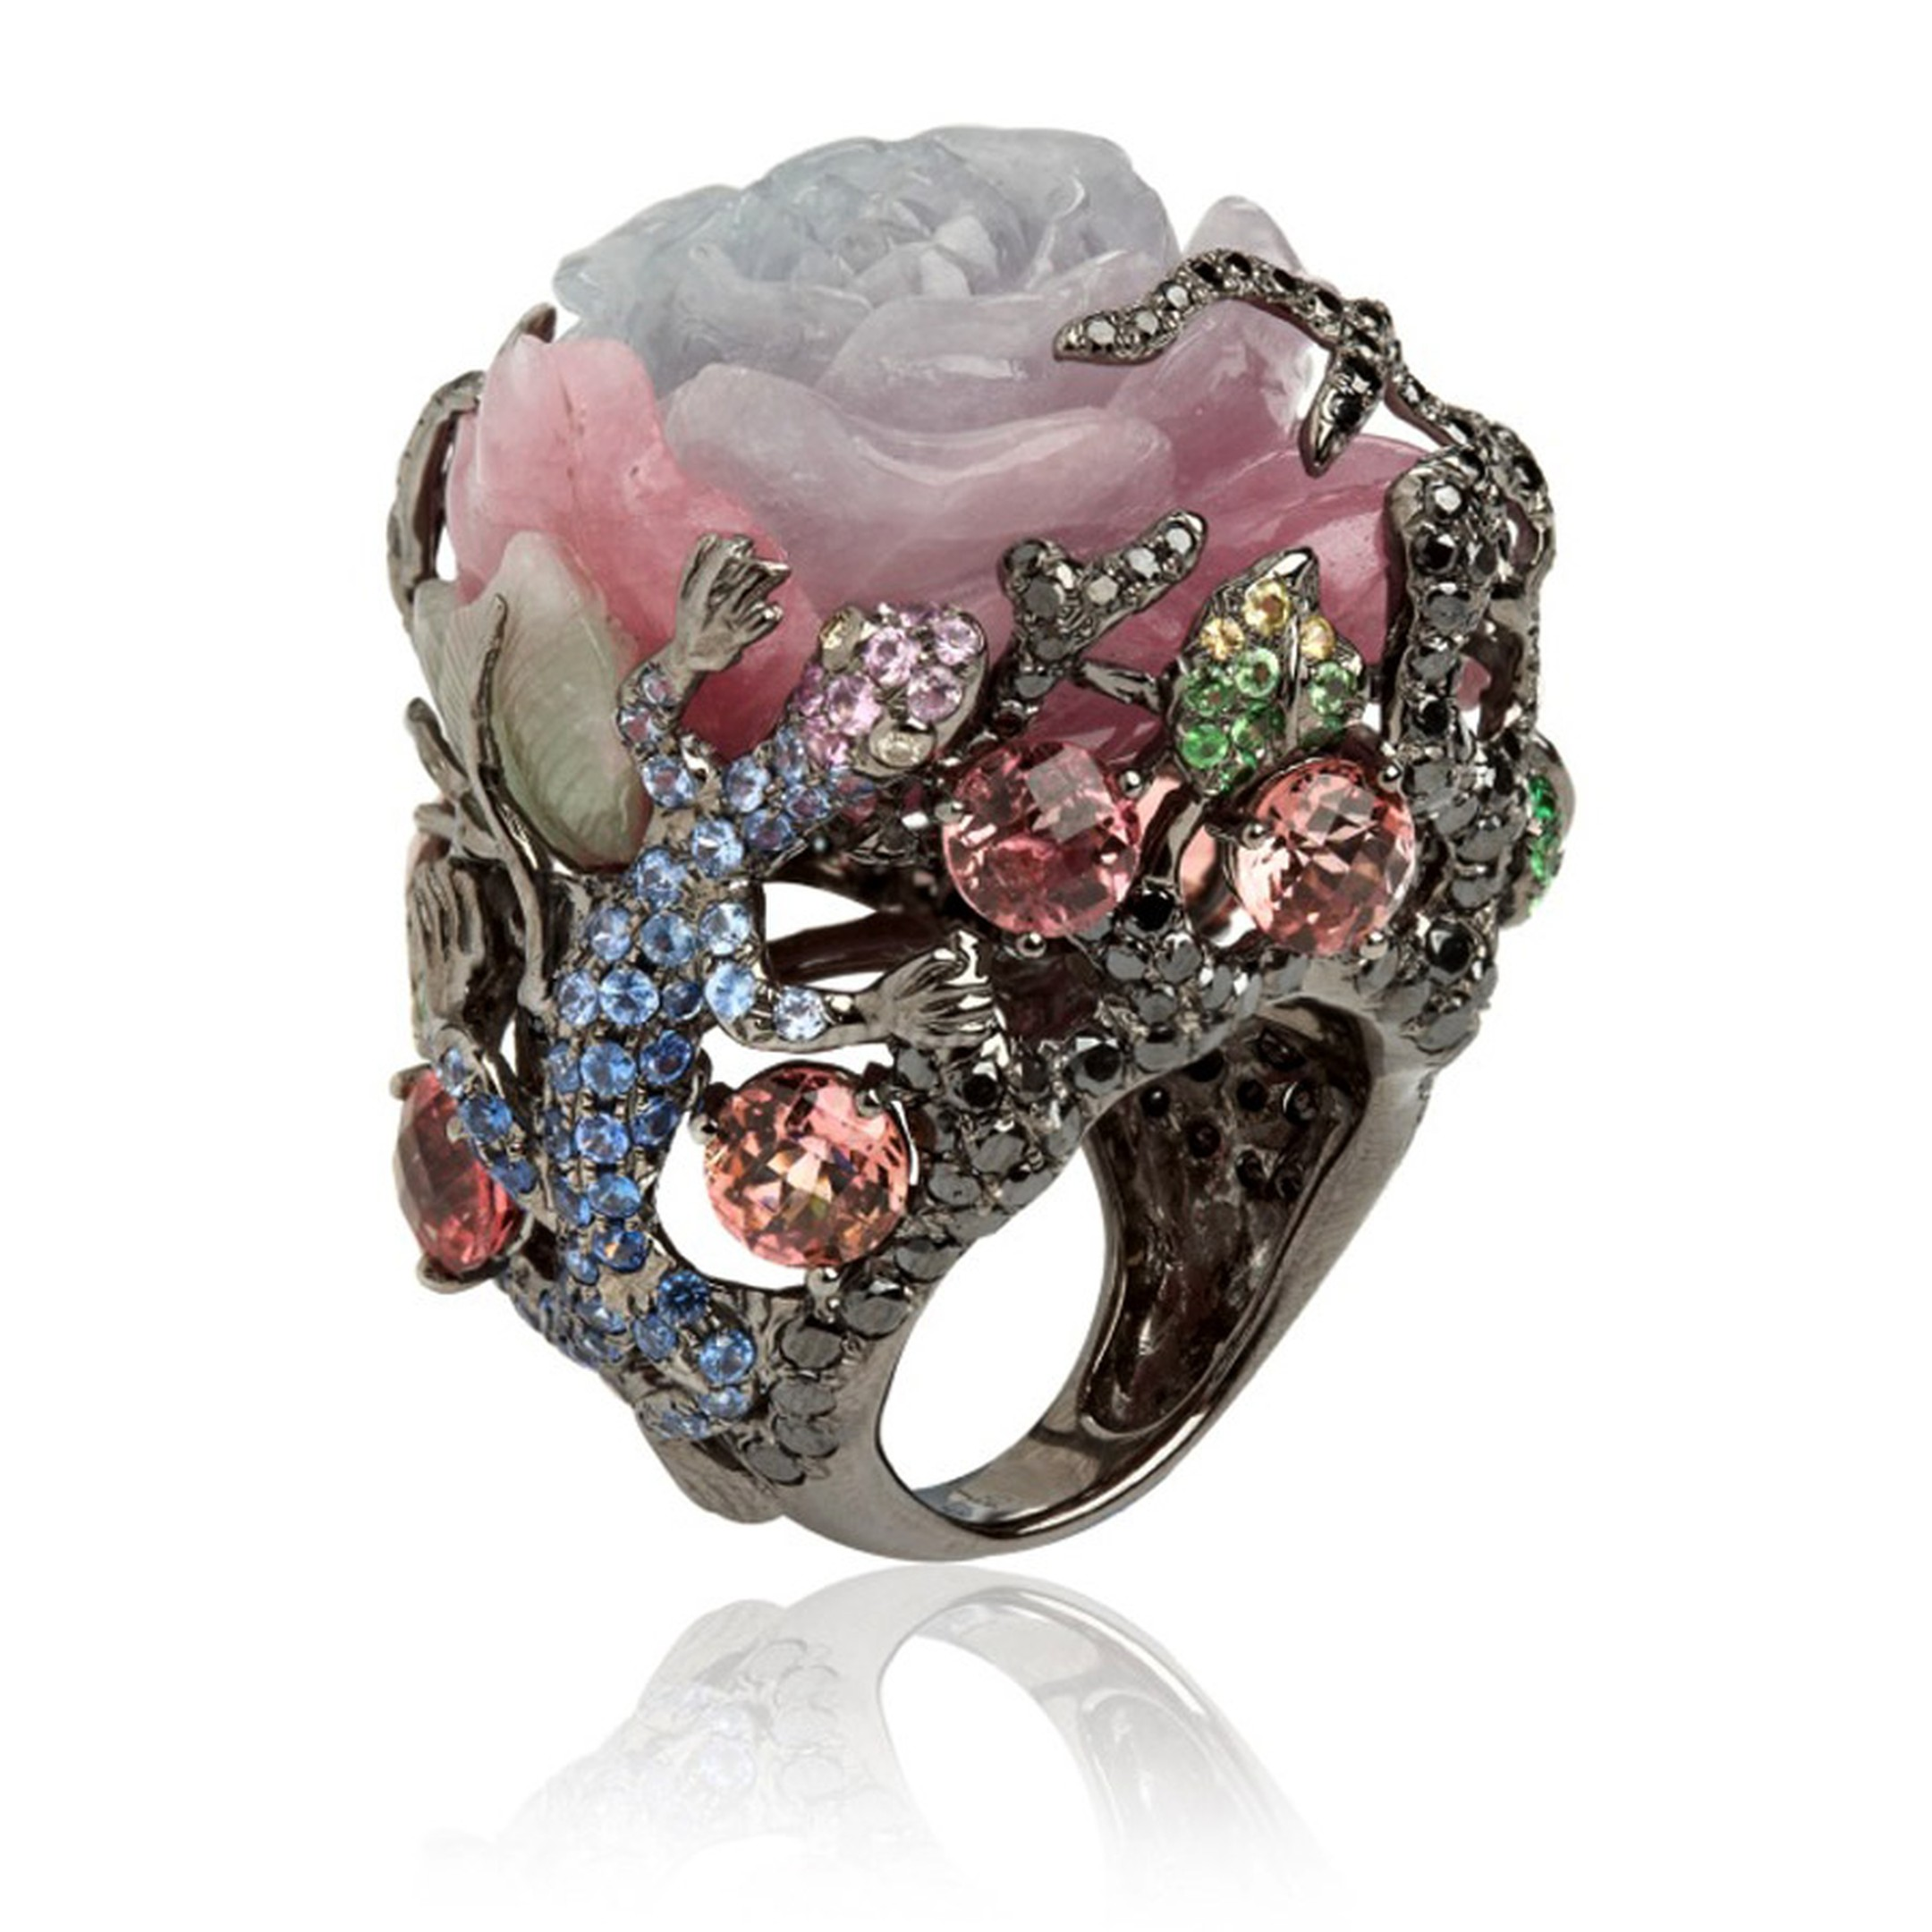 Wendy-Yue-Fantasie-18ct-white-gold,--diamond,sapphire,garnet,jade-and-tourmaline-Dusty-Rose-ring-By-Wendy-Yue--for-Annoushka.jpg